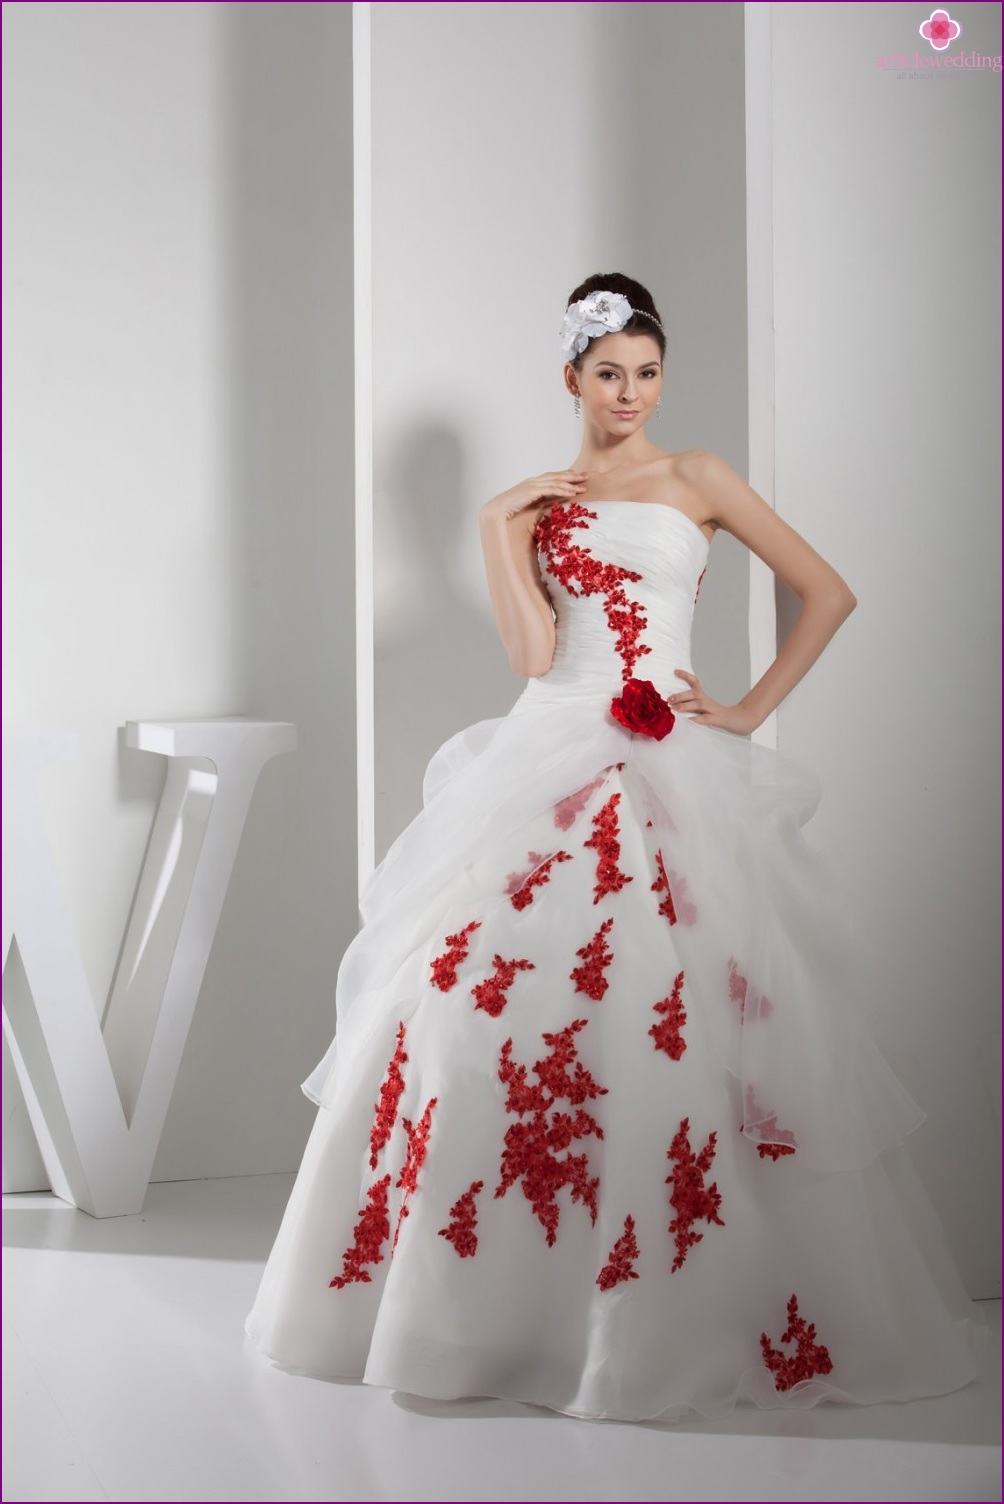 Wedding outfit embroidered with flowers and rhinestones